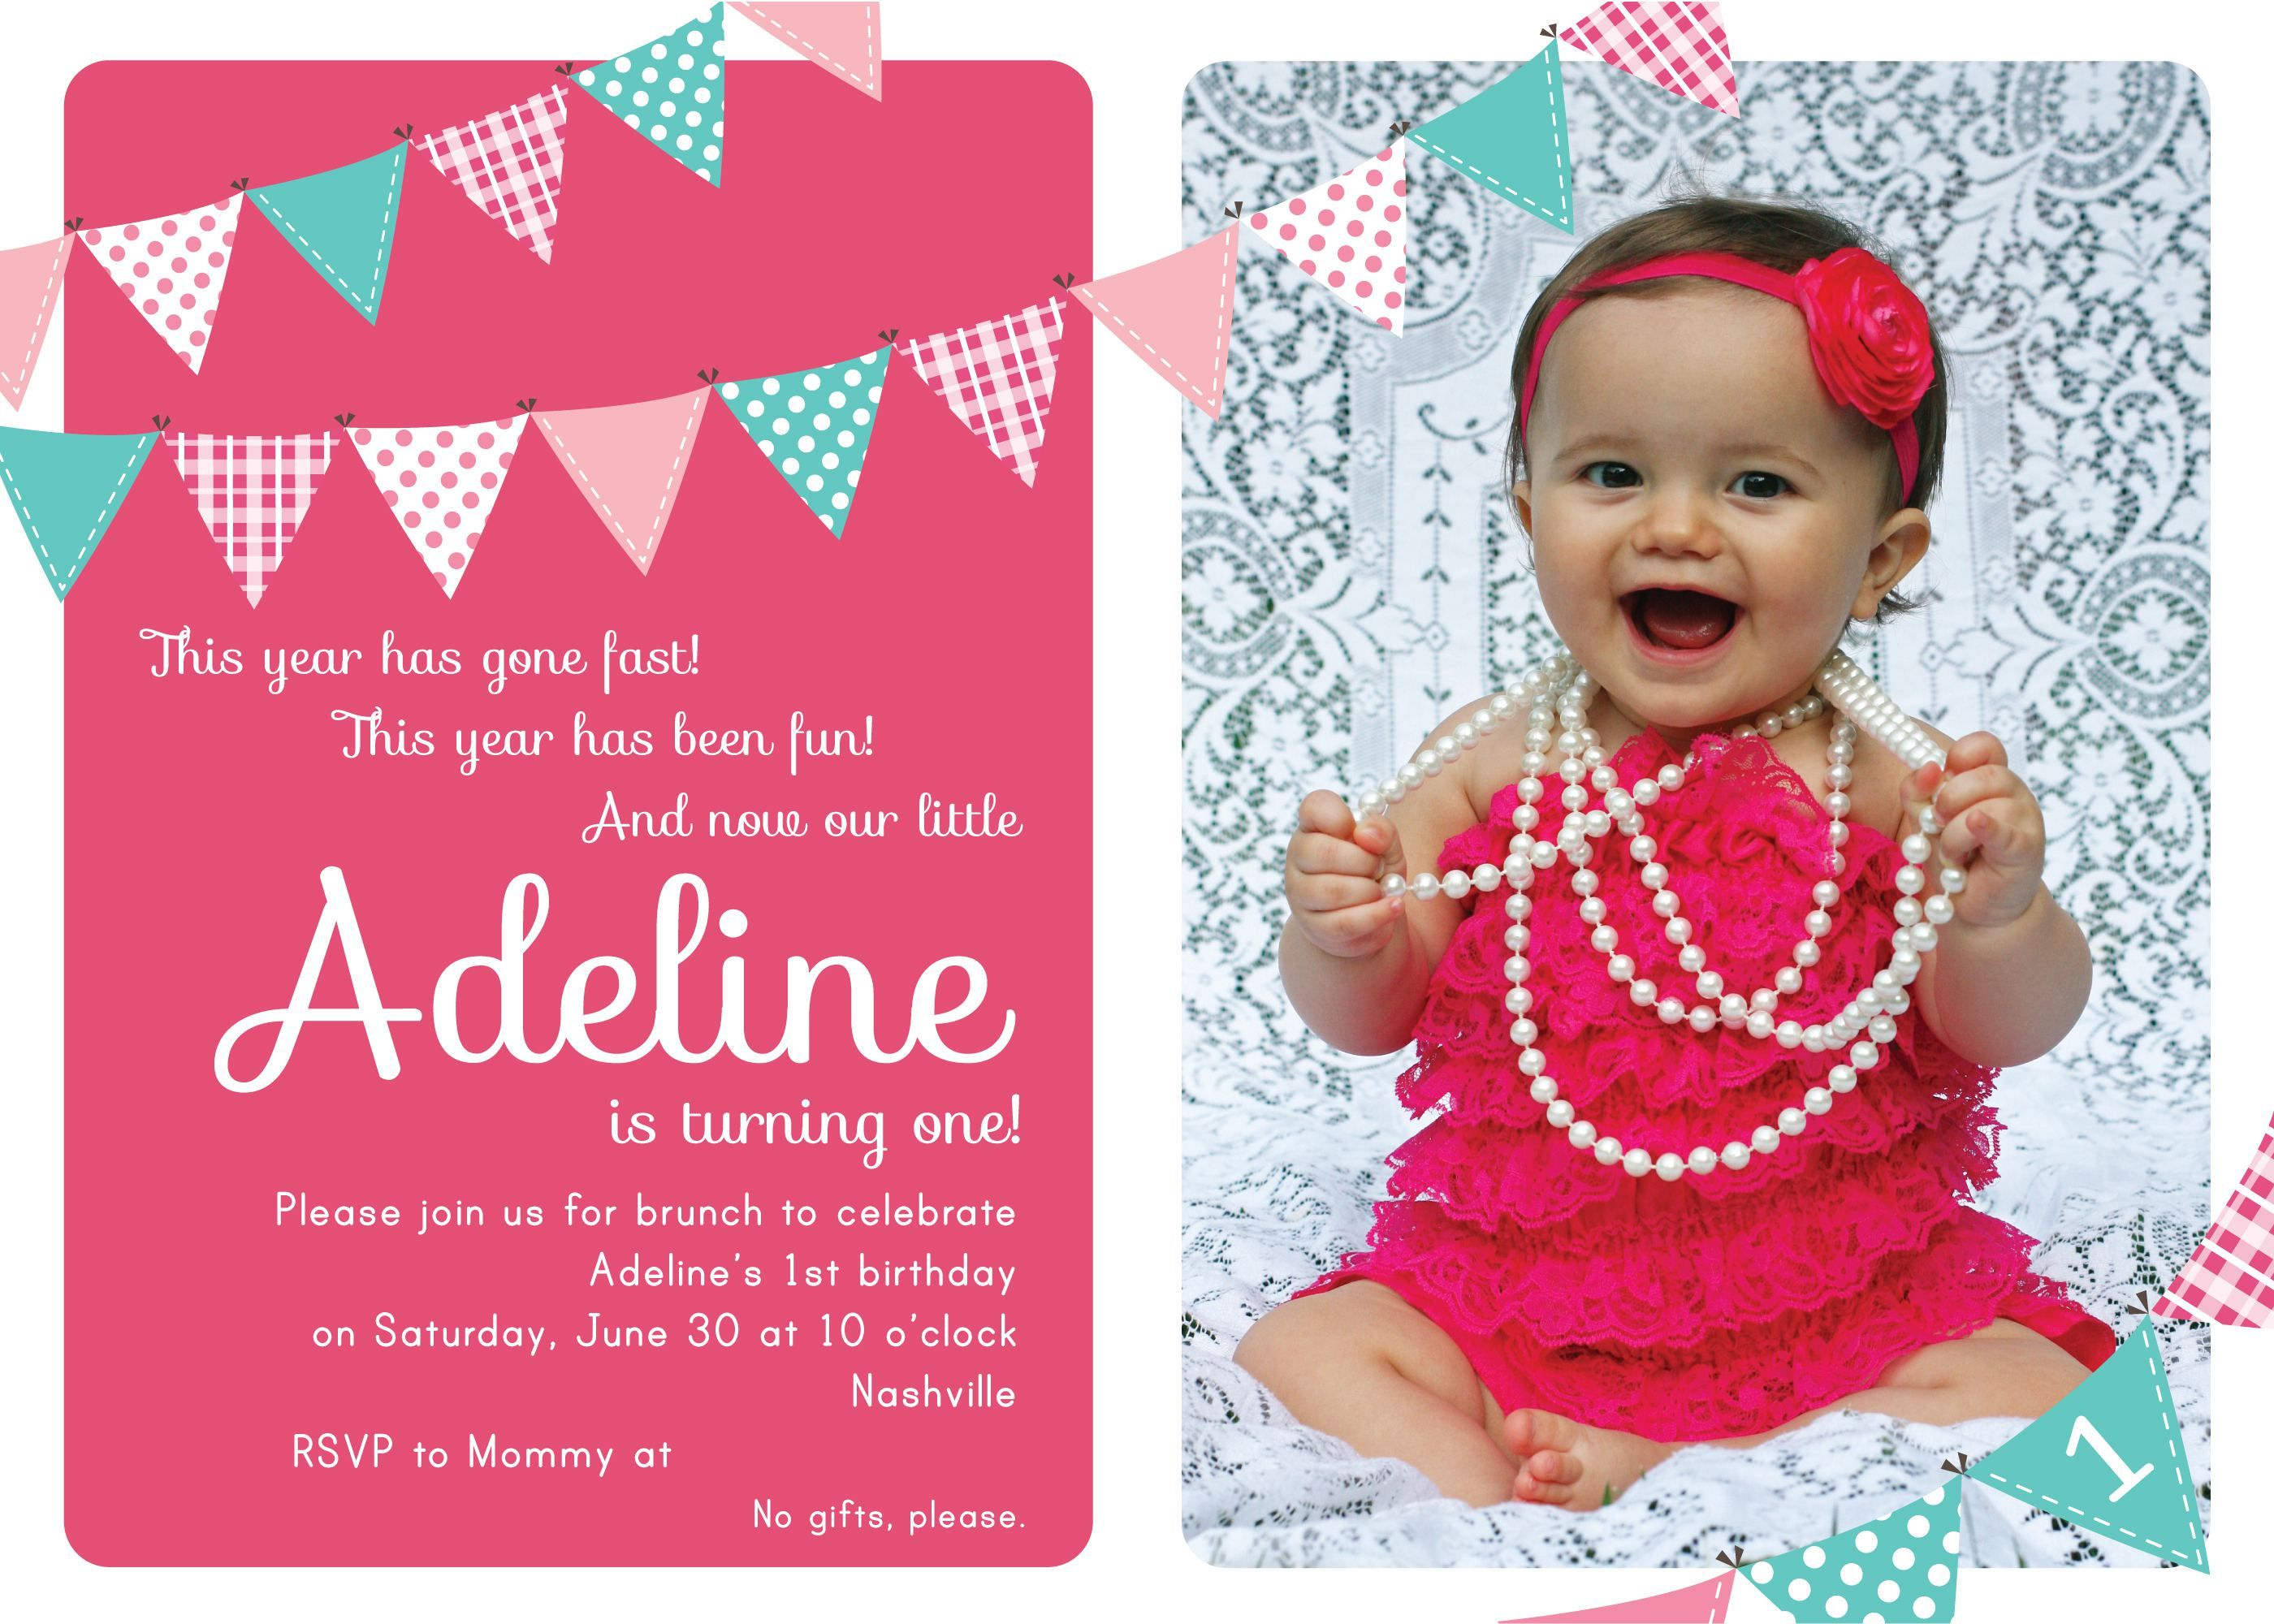 Baptism invitation sample wording baptism invitations baptism invitation sample wording stopboris Images